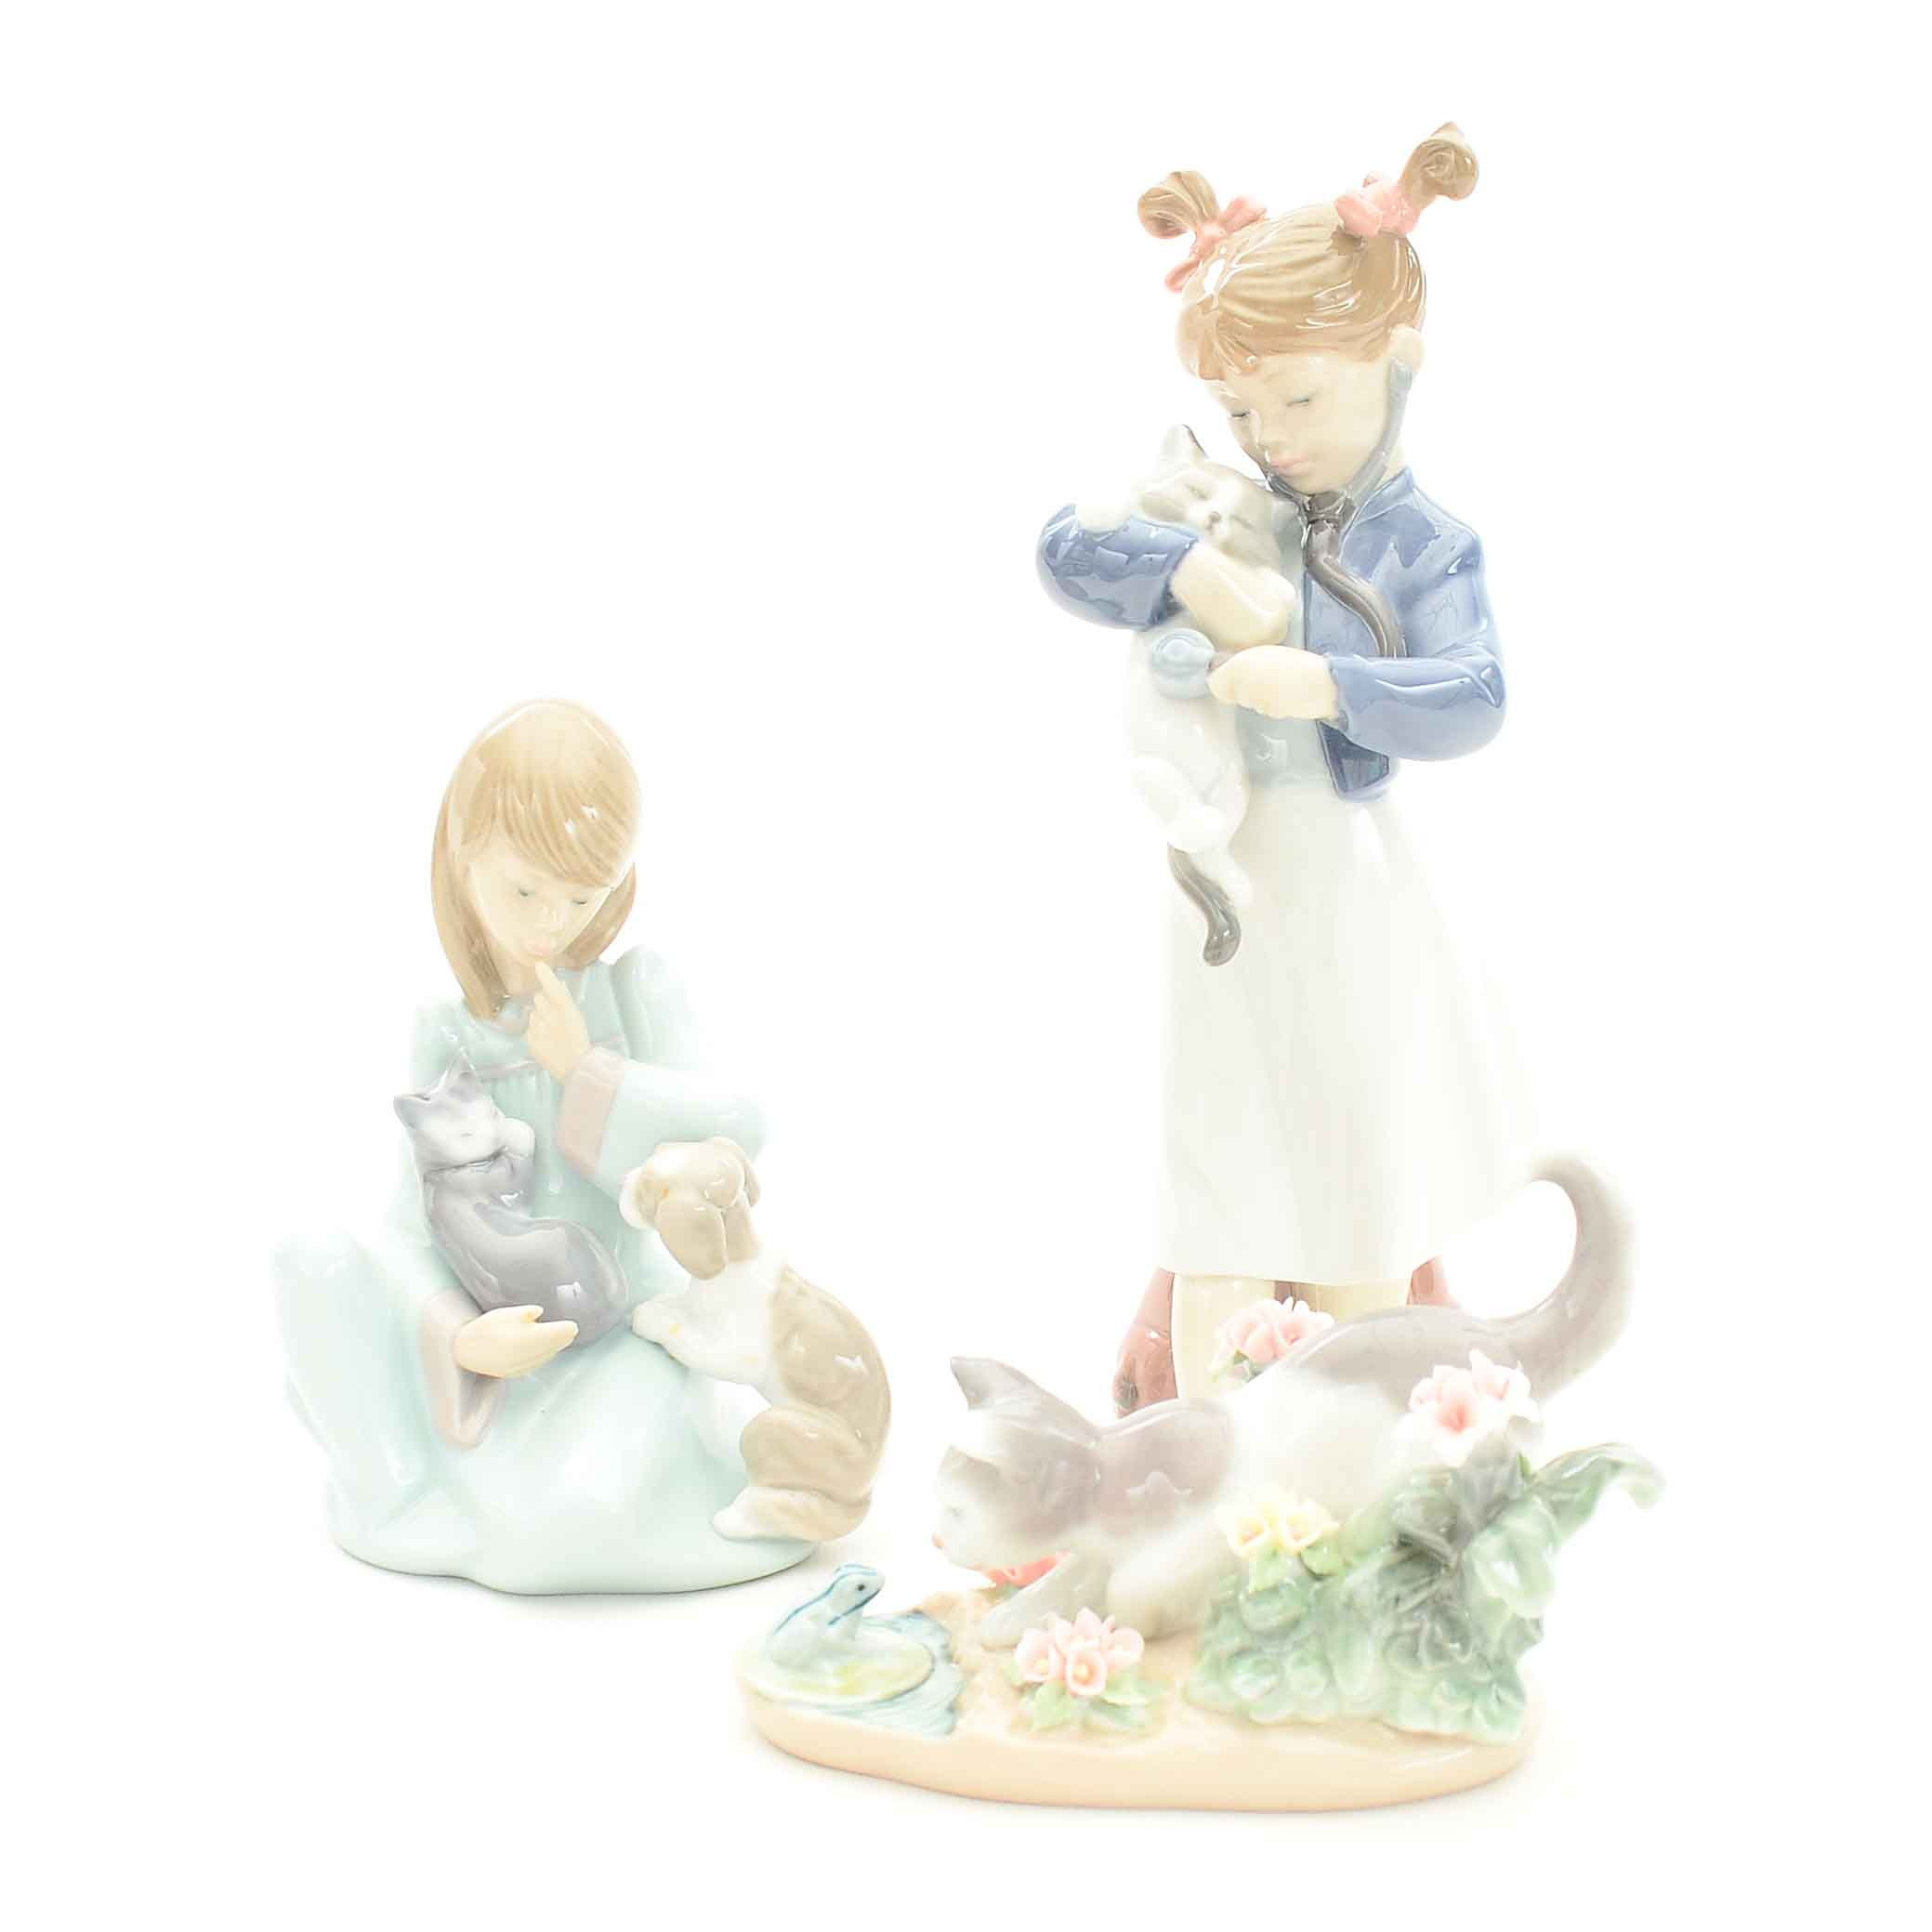 """Lladro """"Kitty Confrontation"""", """"Cat Nap Girl"""", """"You'll Feel Better"""" Figurines"""